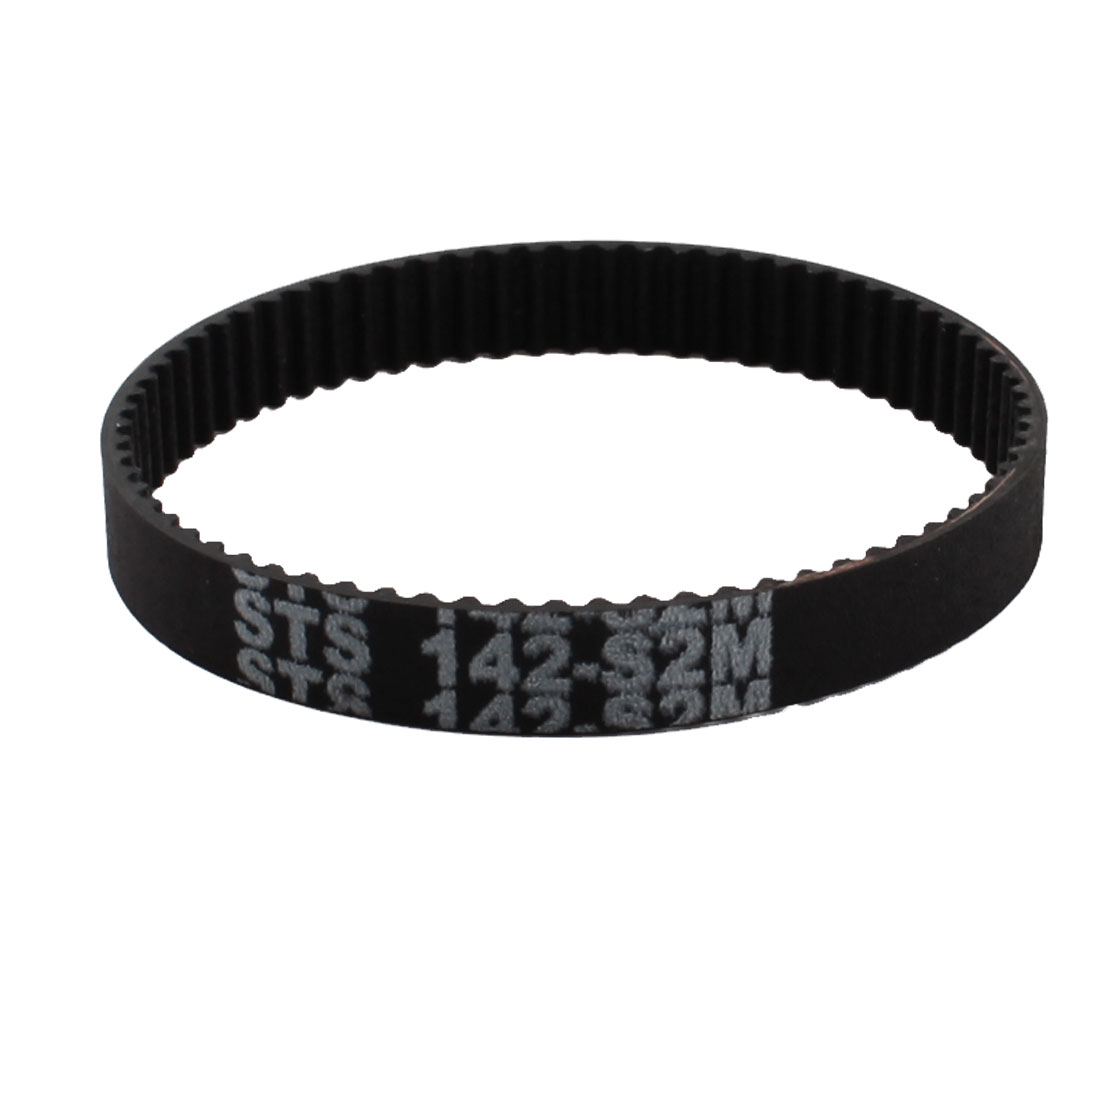 S2M-142 2mm Pitch 71-Teeth 6mm Width Black Rubber Single Side Synchronous Timing Belt